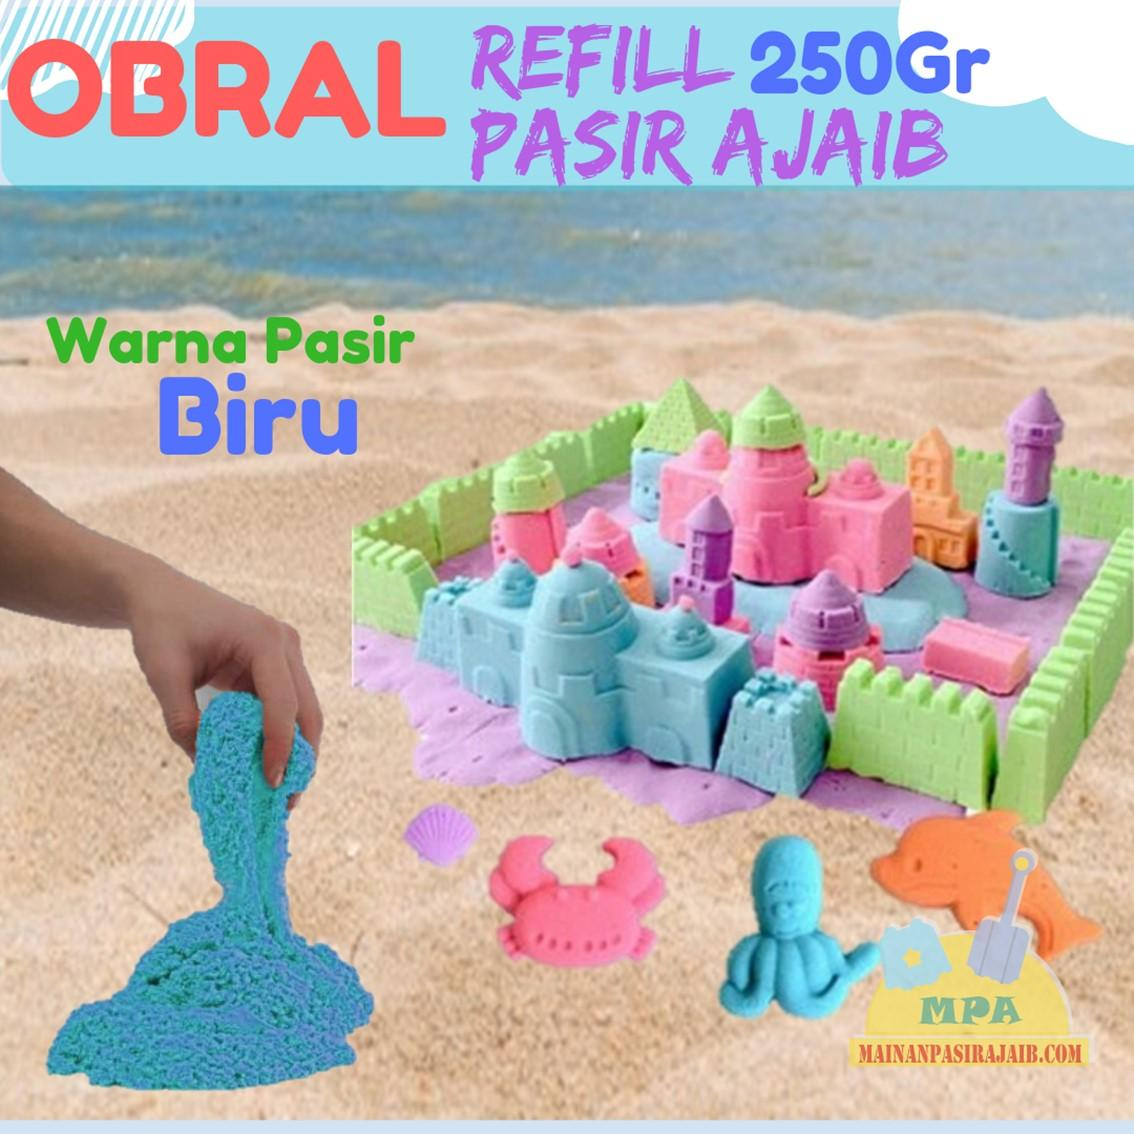 Obral Refill Pasir Ajaib Model Magic Play Sand 250gr Murah b503070dd5